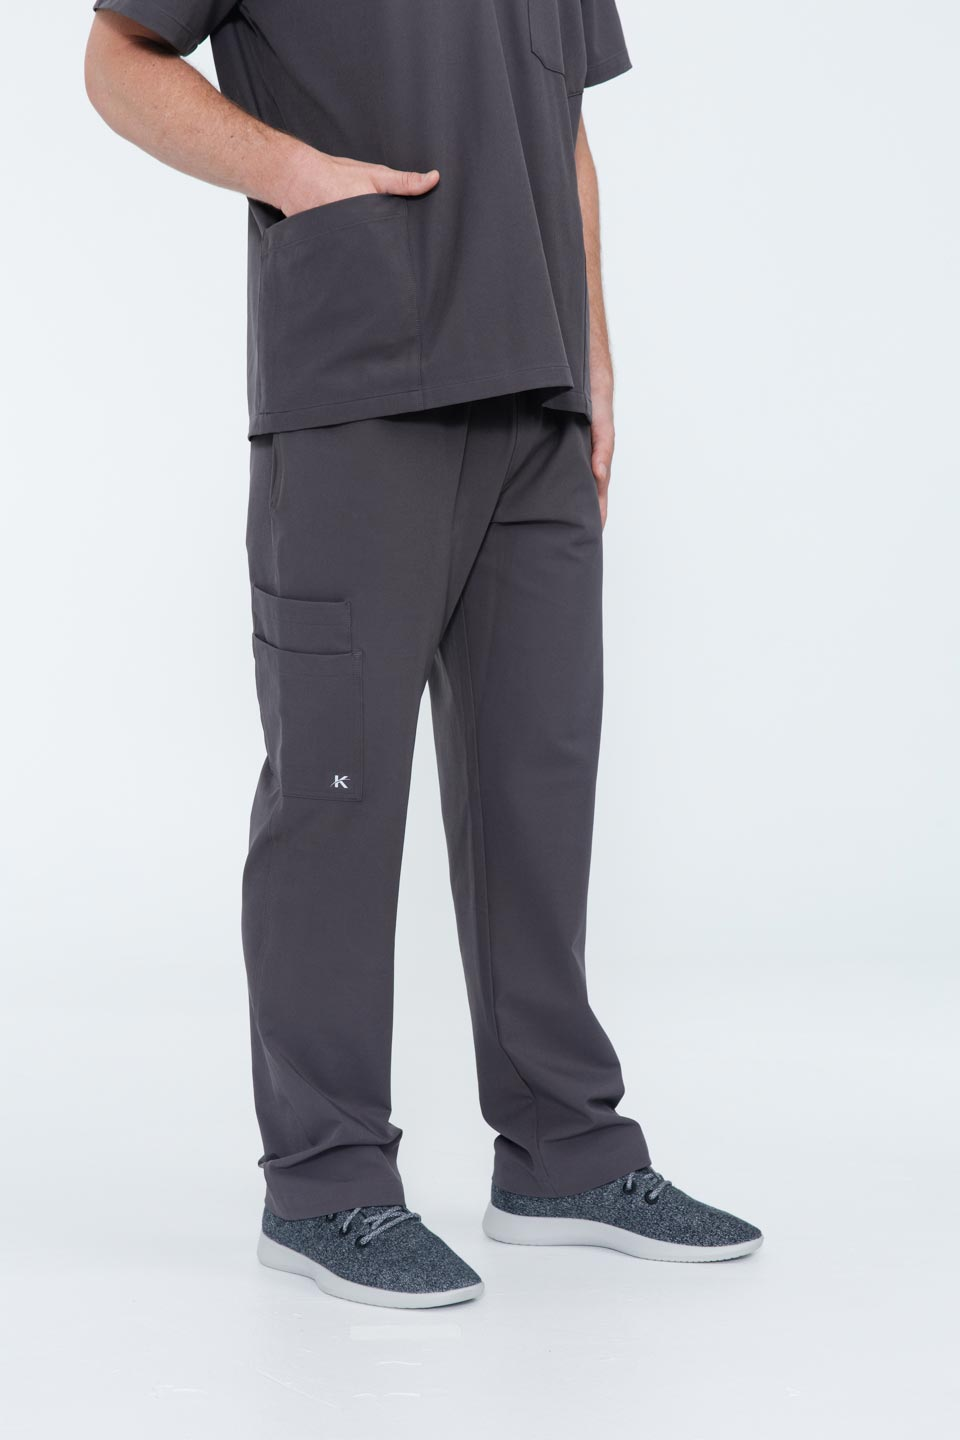 Kalea - Mens Gallant Scrub Pants - Gray